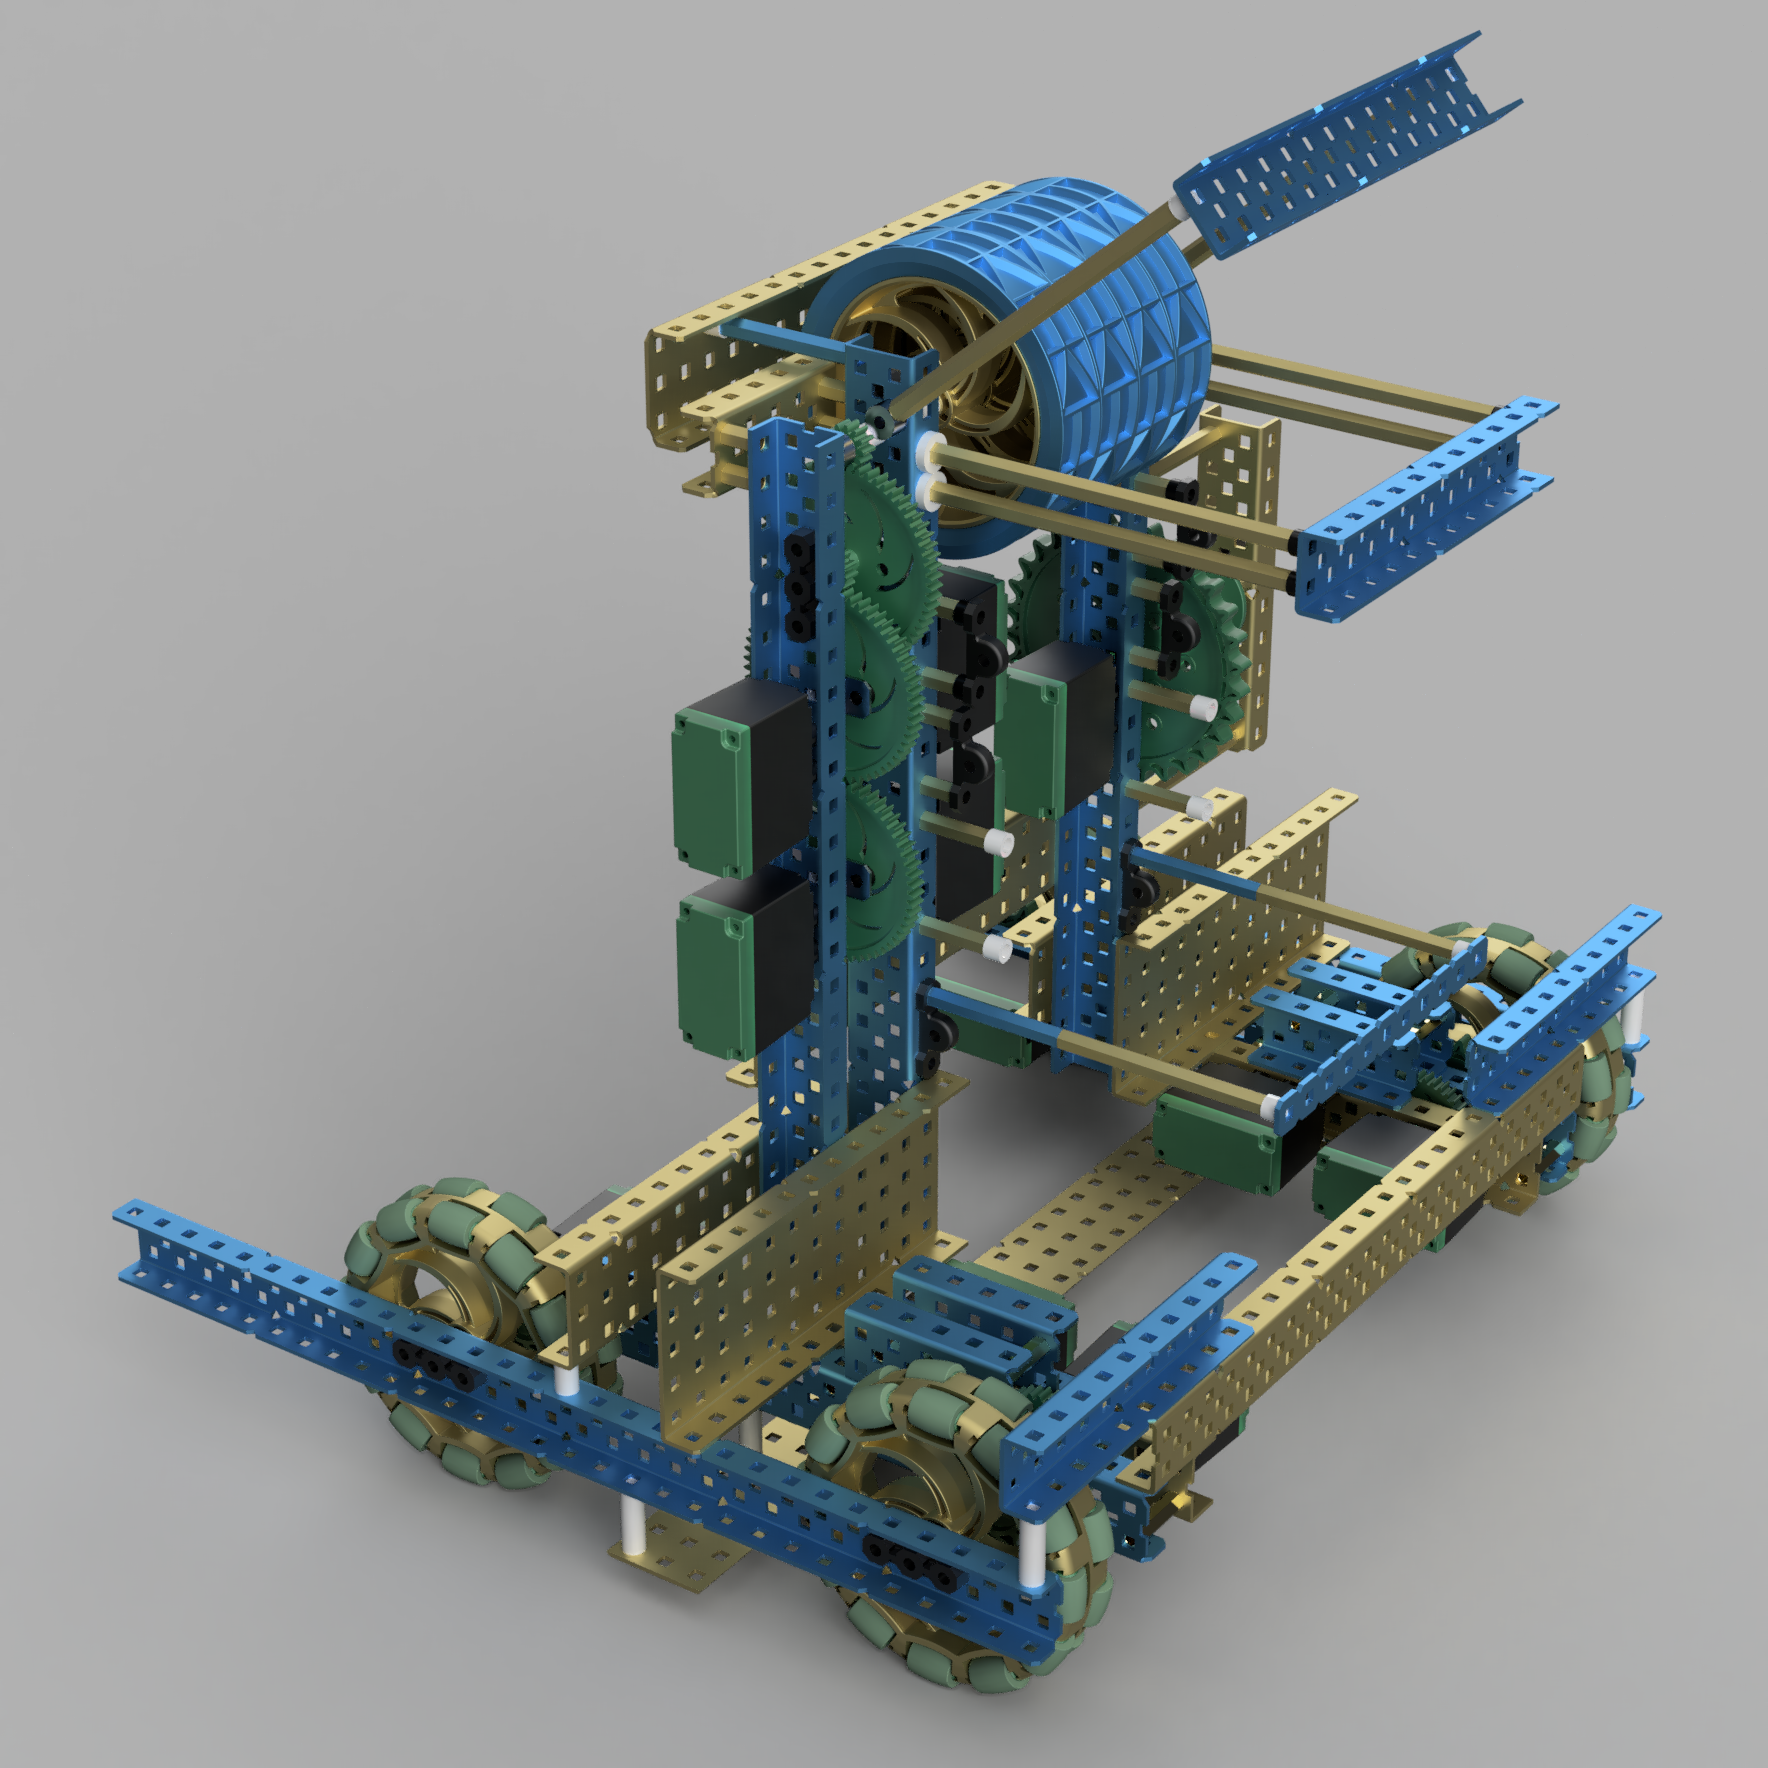 Chassis%20and%20Flywheel%20render